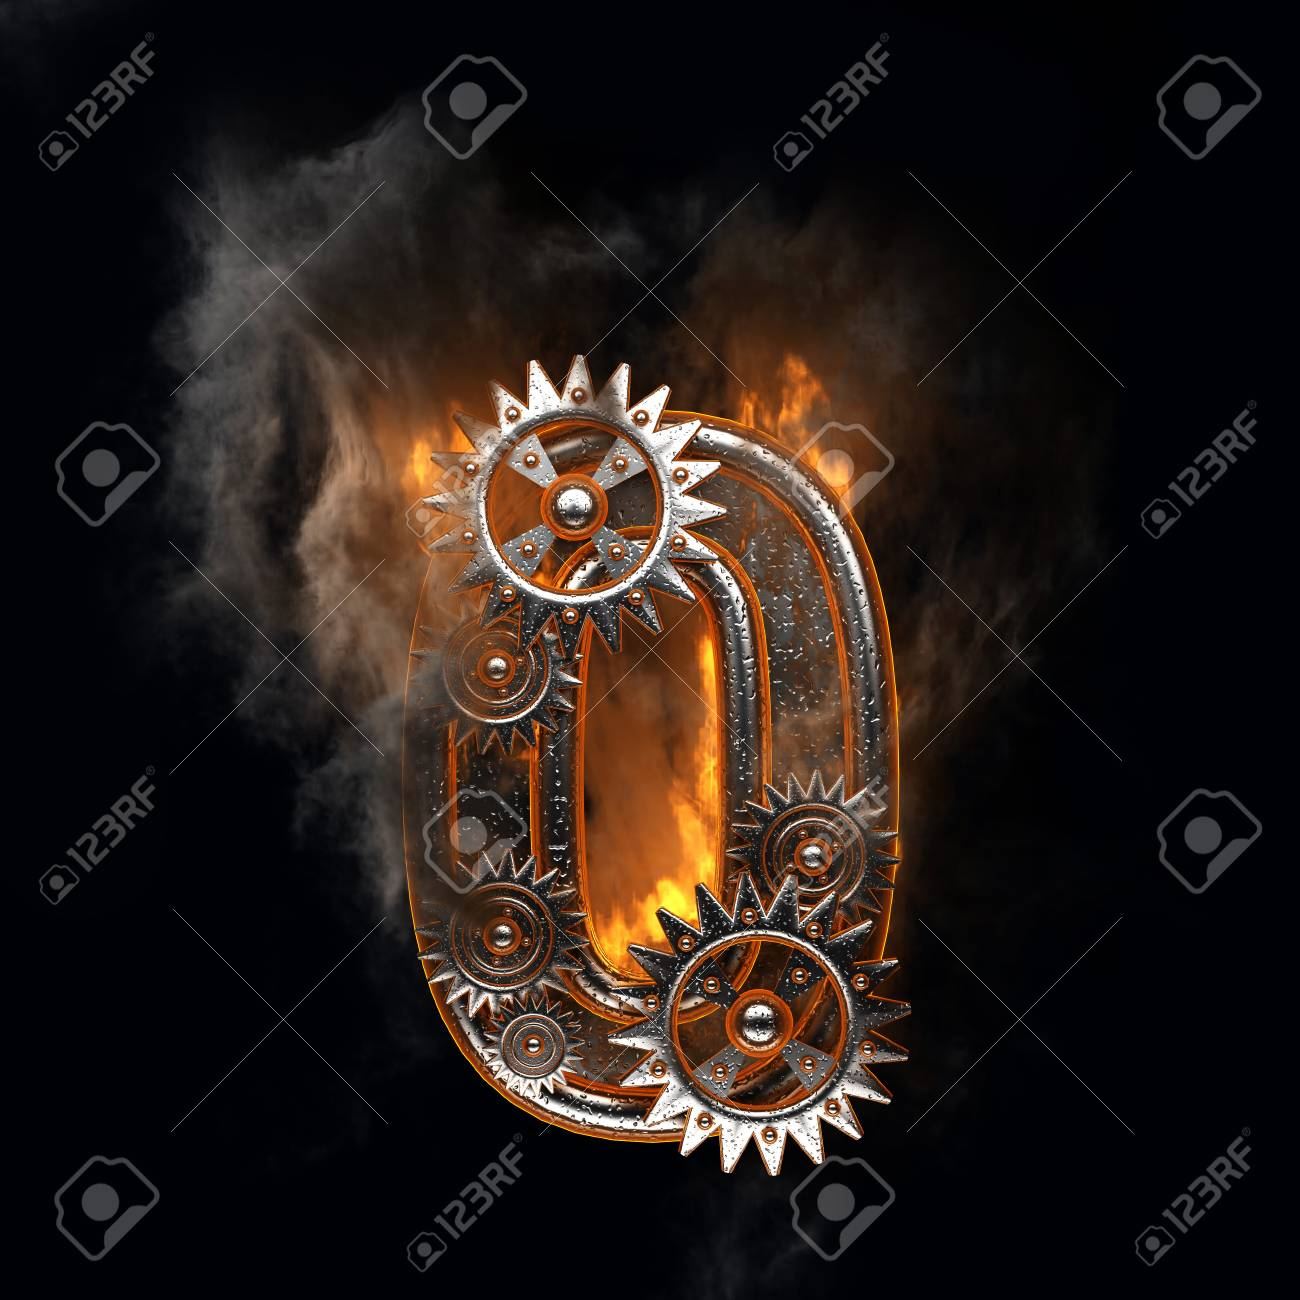 burning figure with gears Stock Photo - 22646203